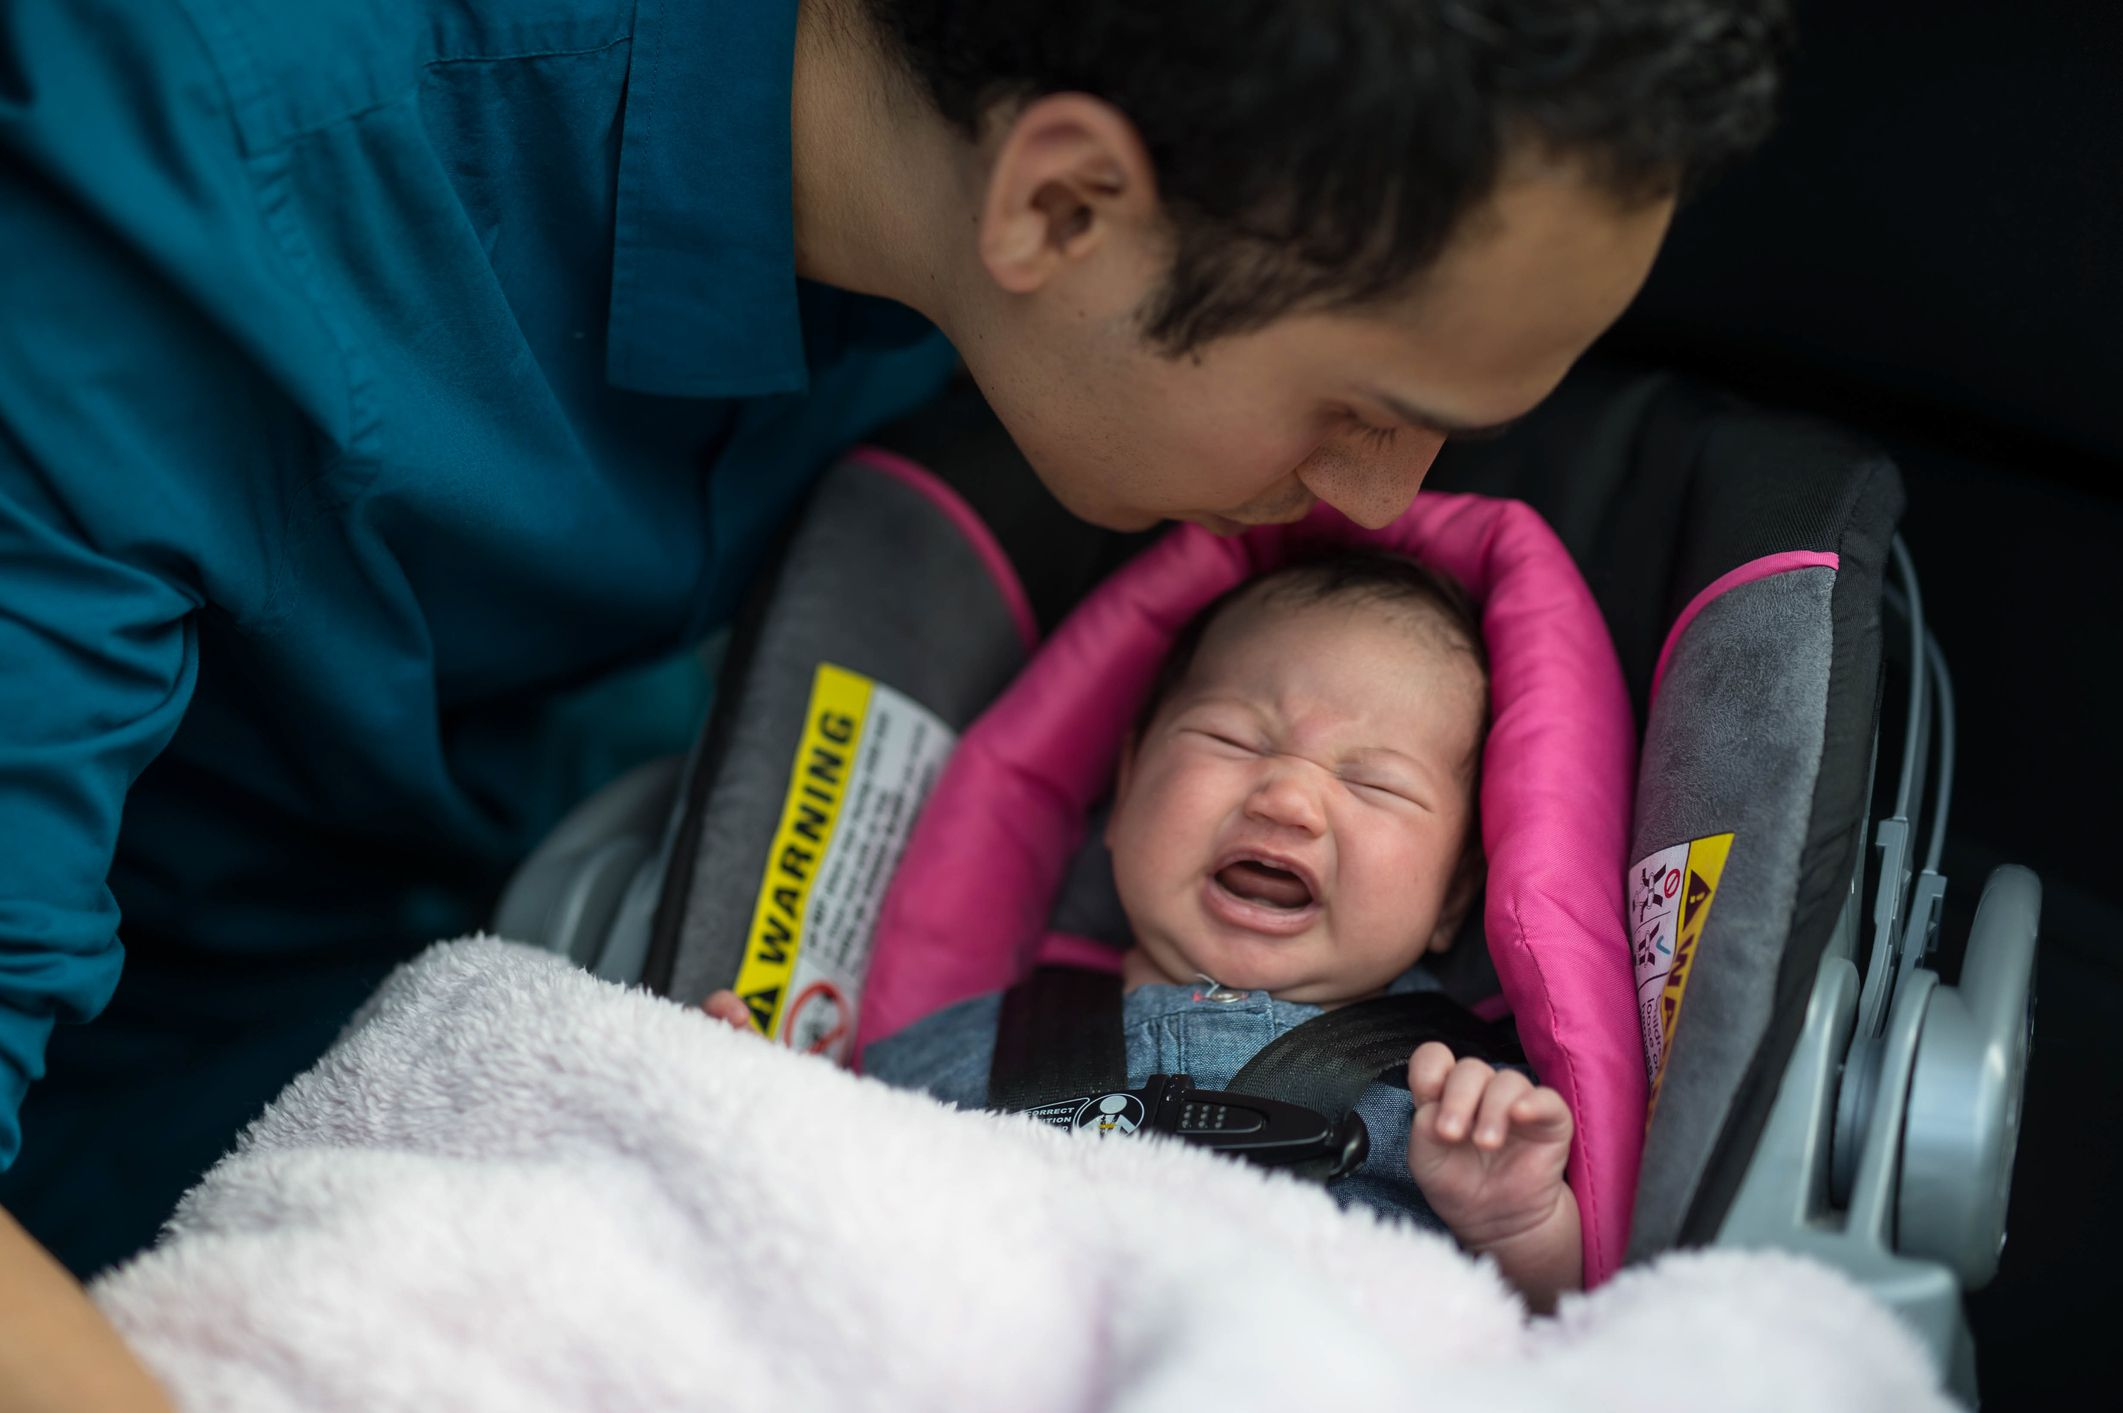 Gettyimages A D E Dca A Da on For Car Seat Ages Ny